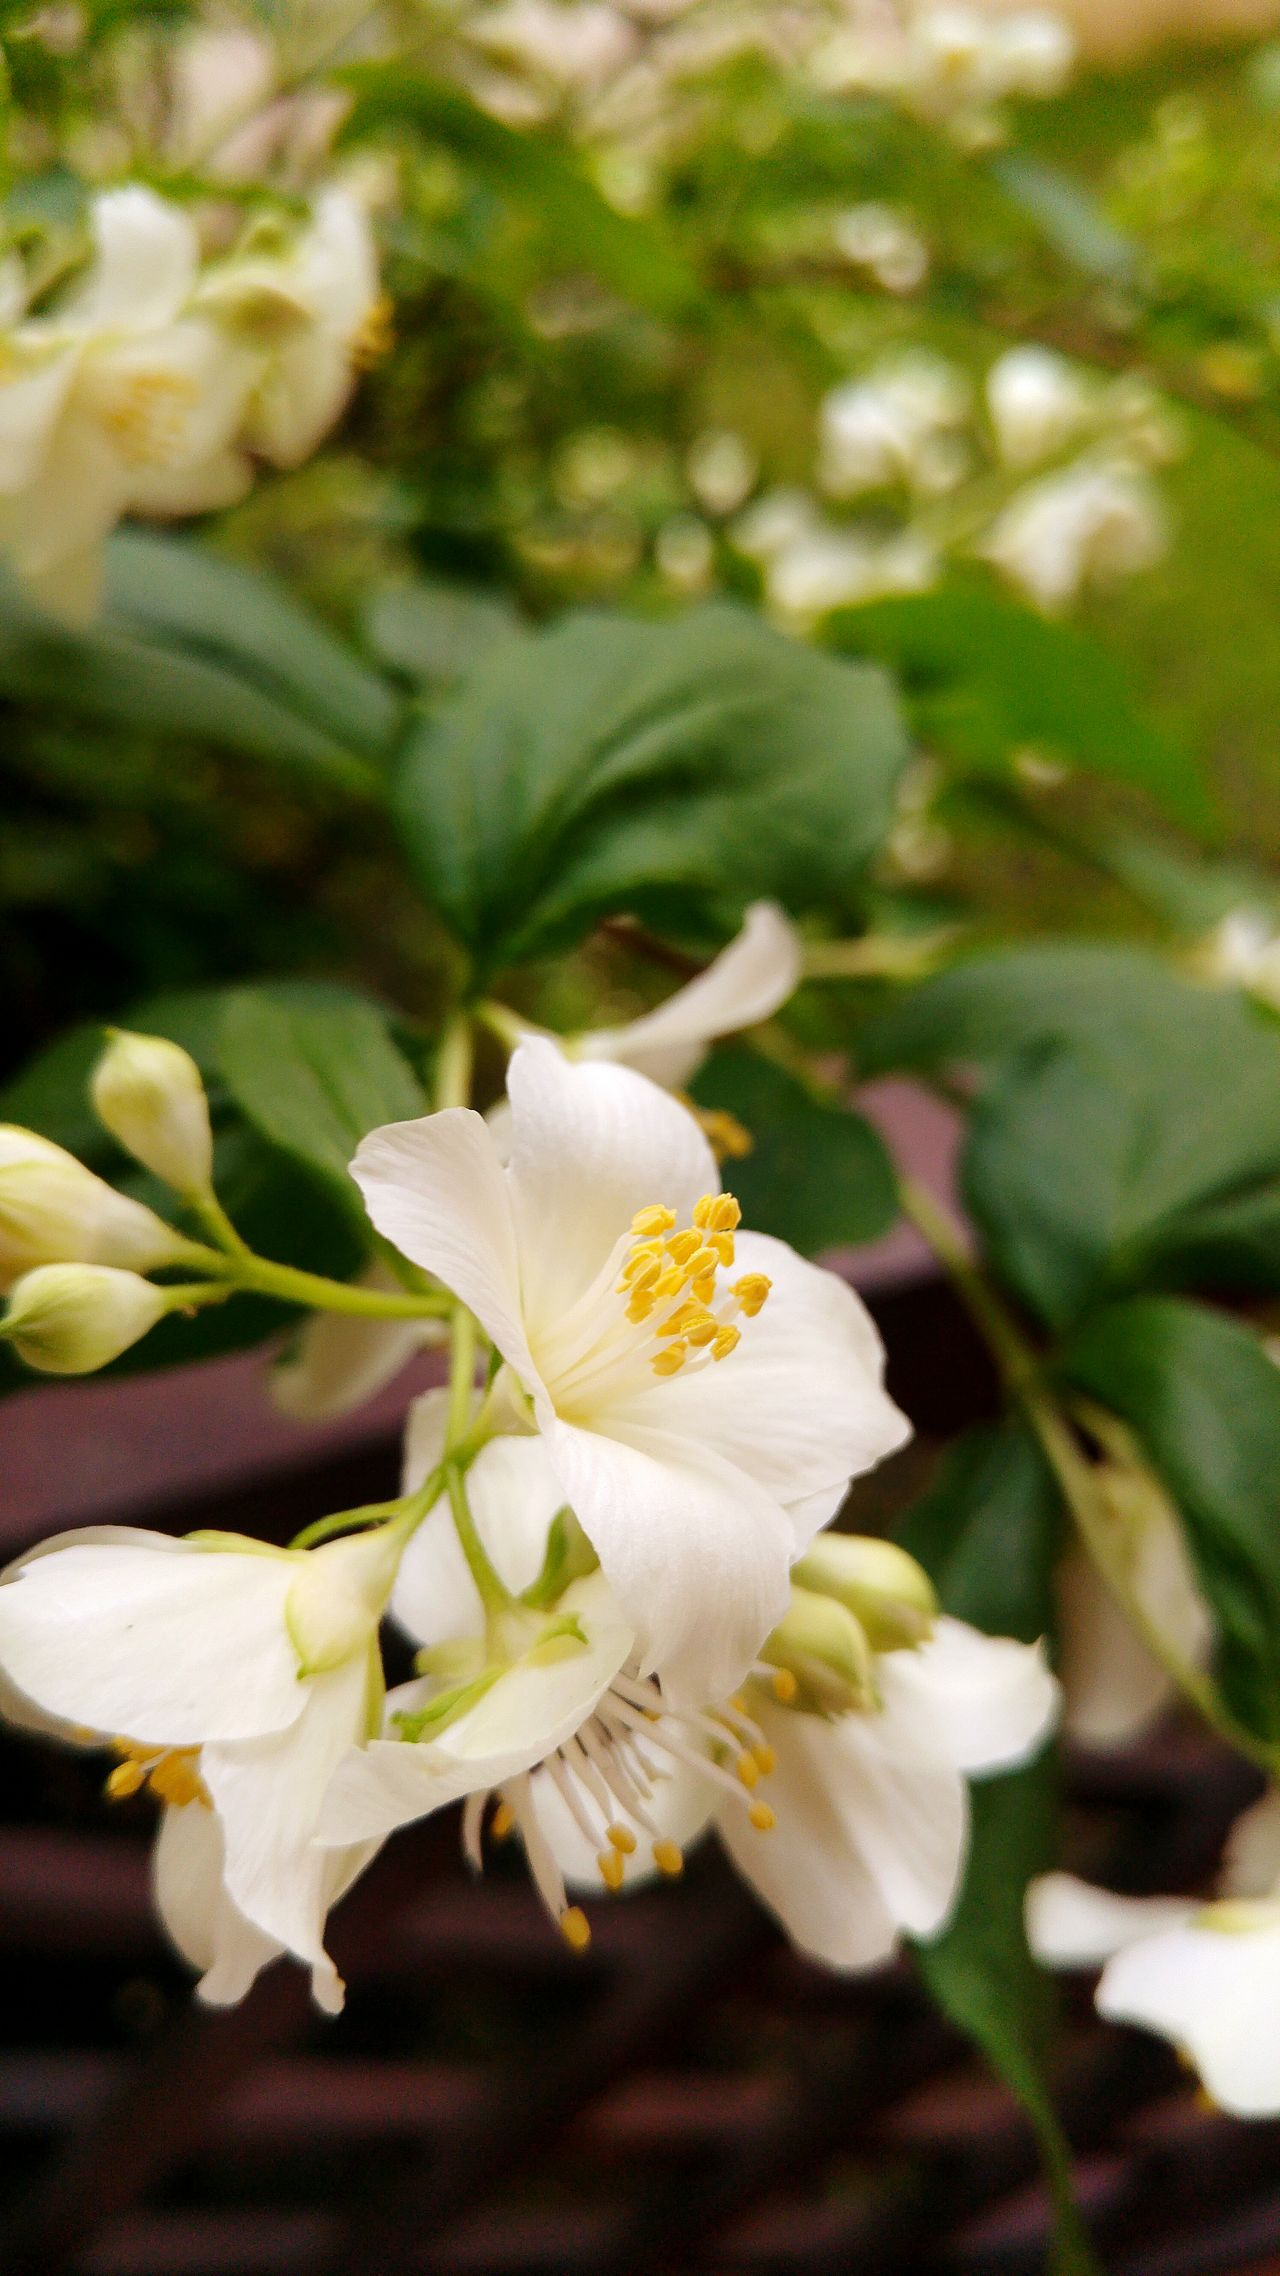 Jasmine Flower Beautiful_flower Nature_collection Flower Collection